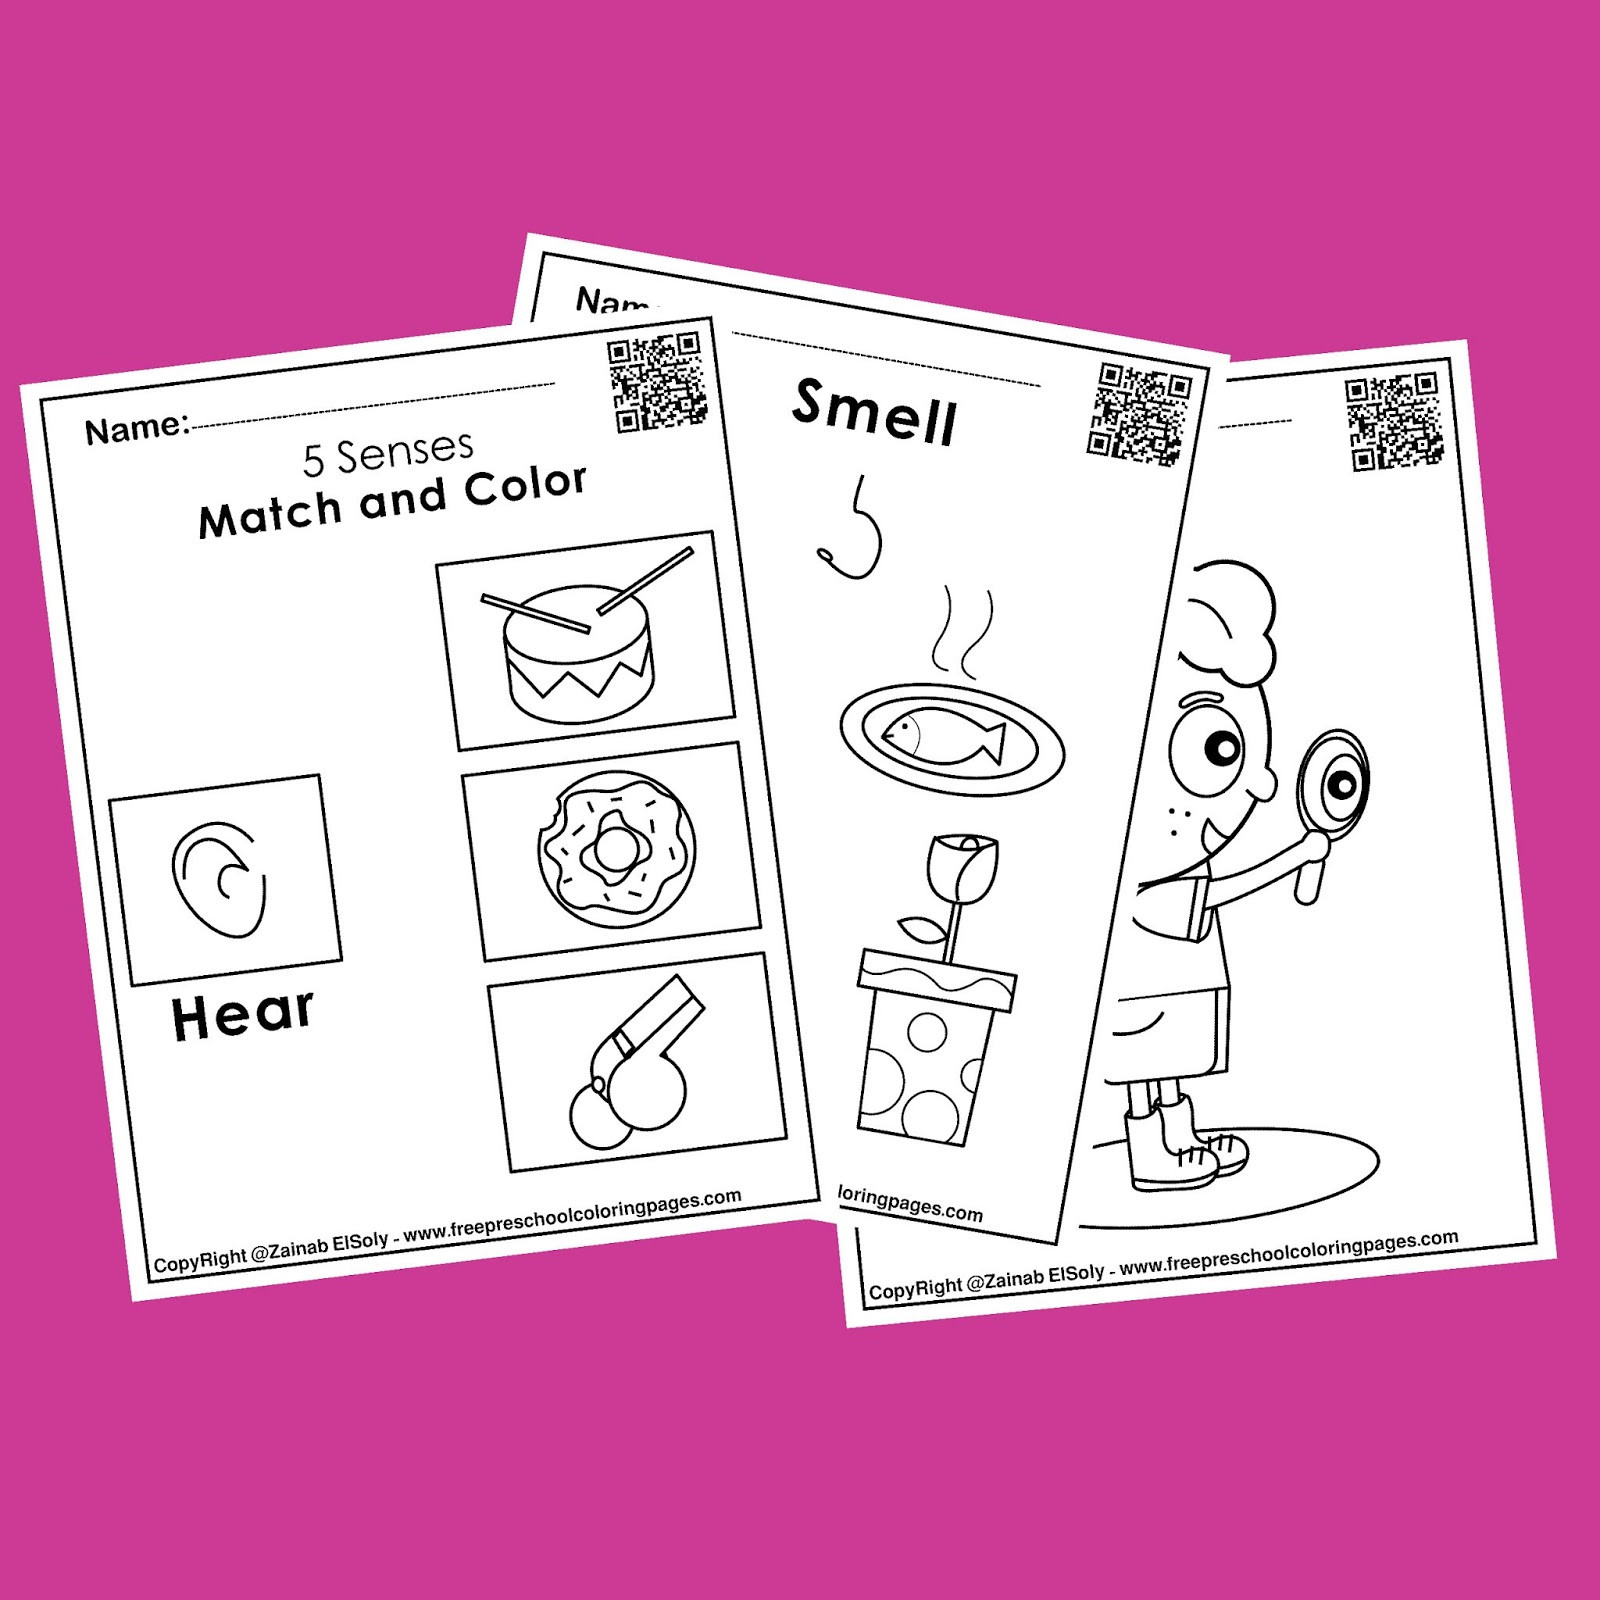 5 Senses Worksheets Preschool 5 Senses Free Worksheets Activities for Kids